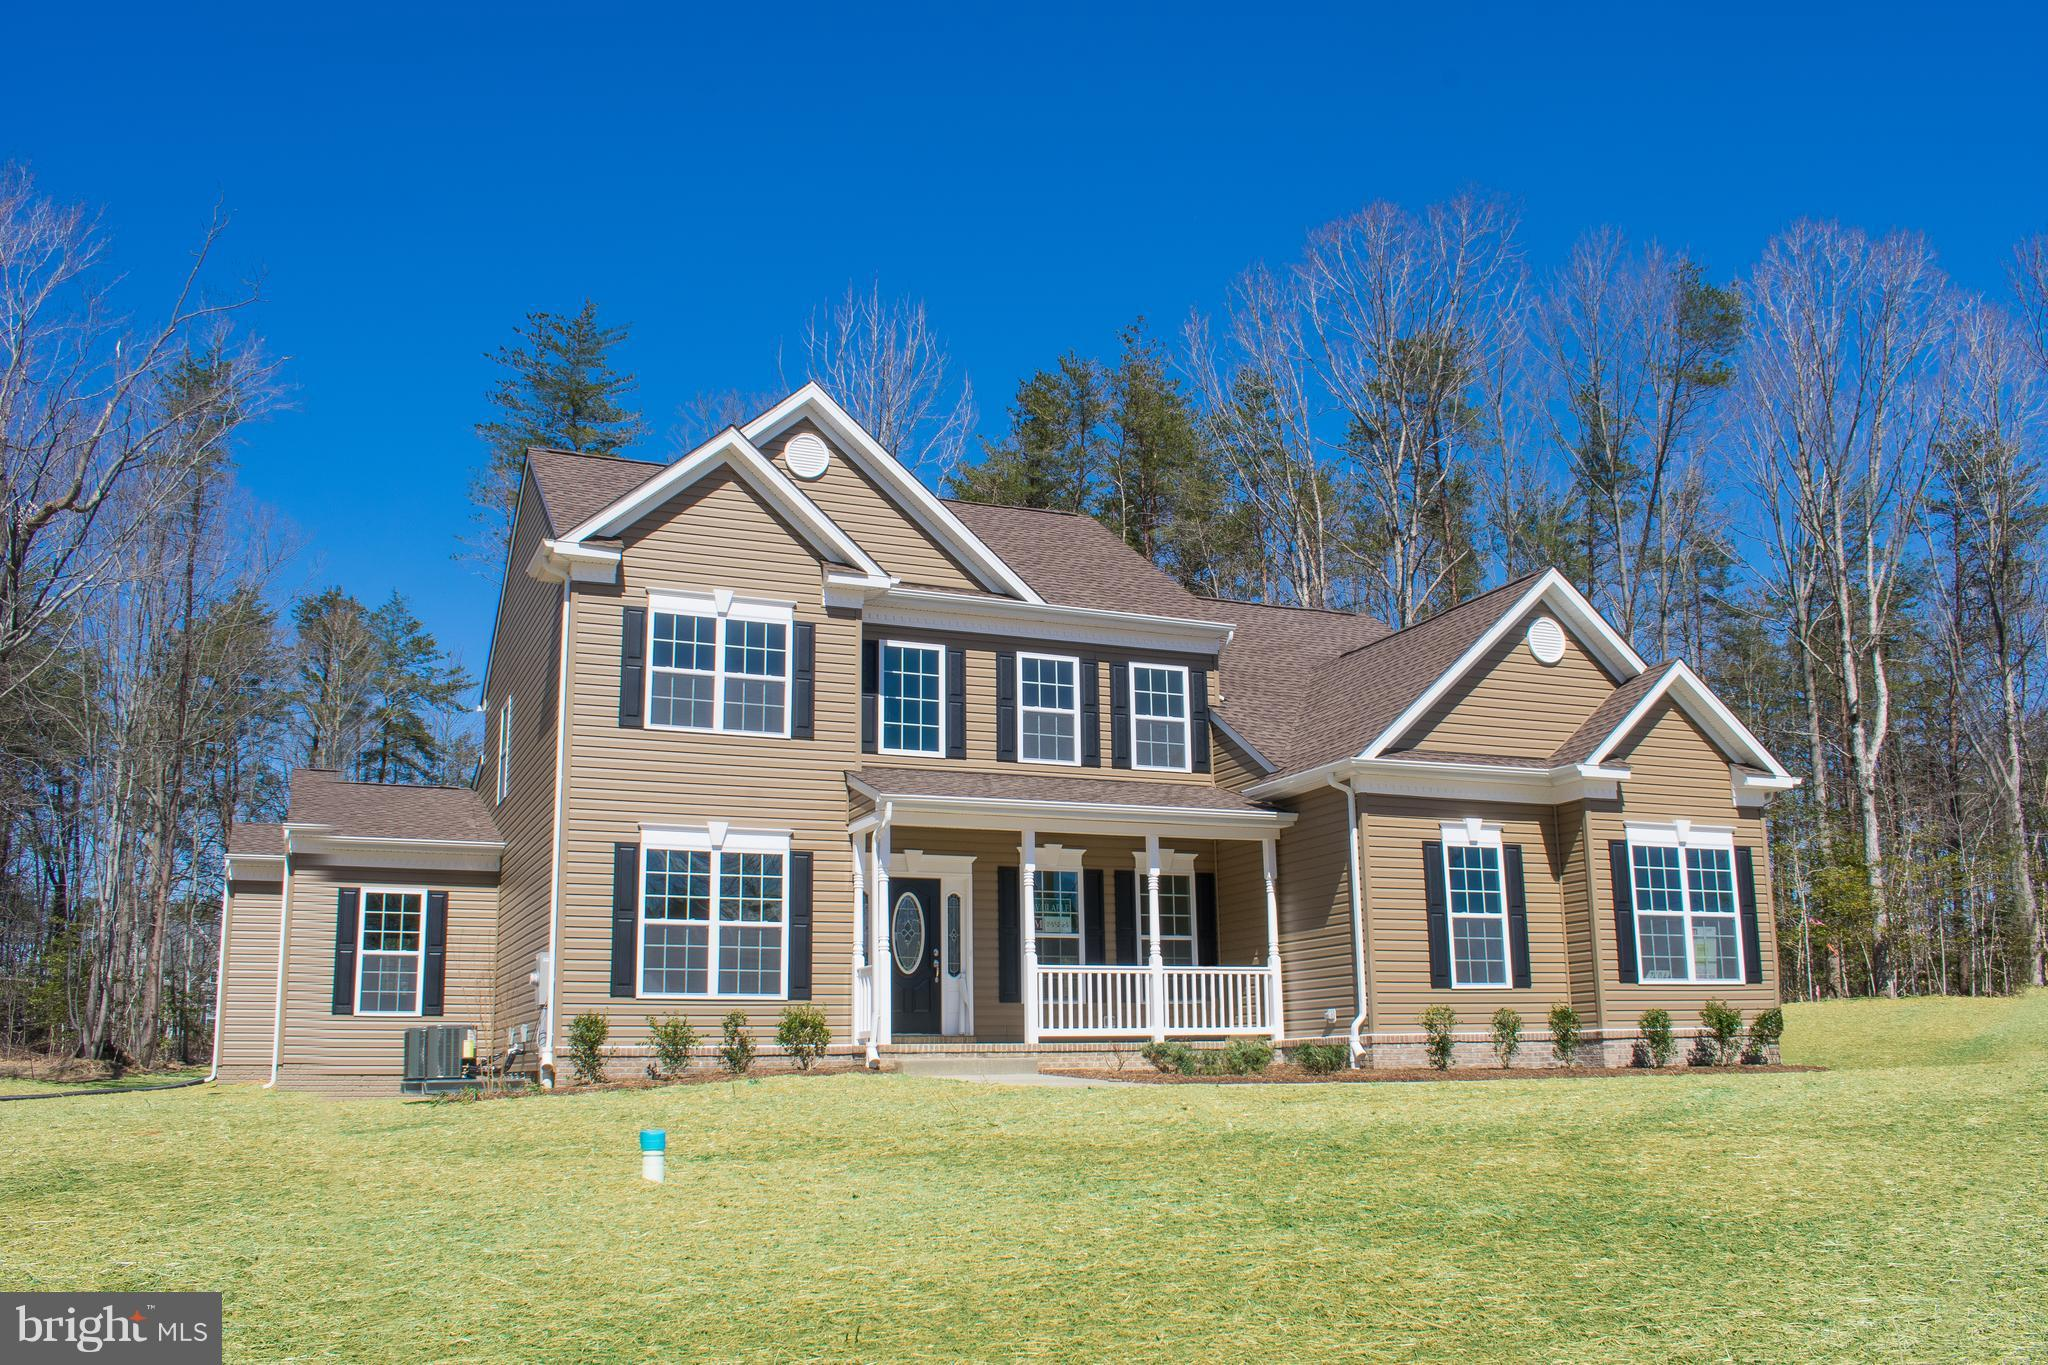 7404 SPICETREE PLACE, HUGHESVILLE, MD 20637